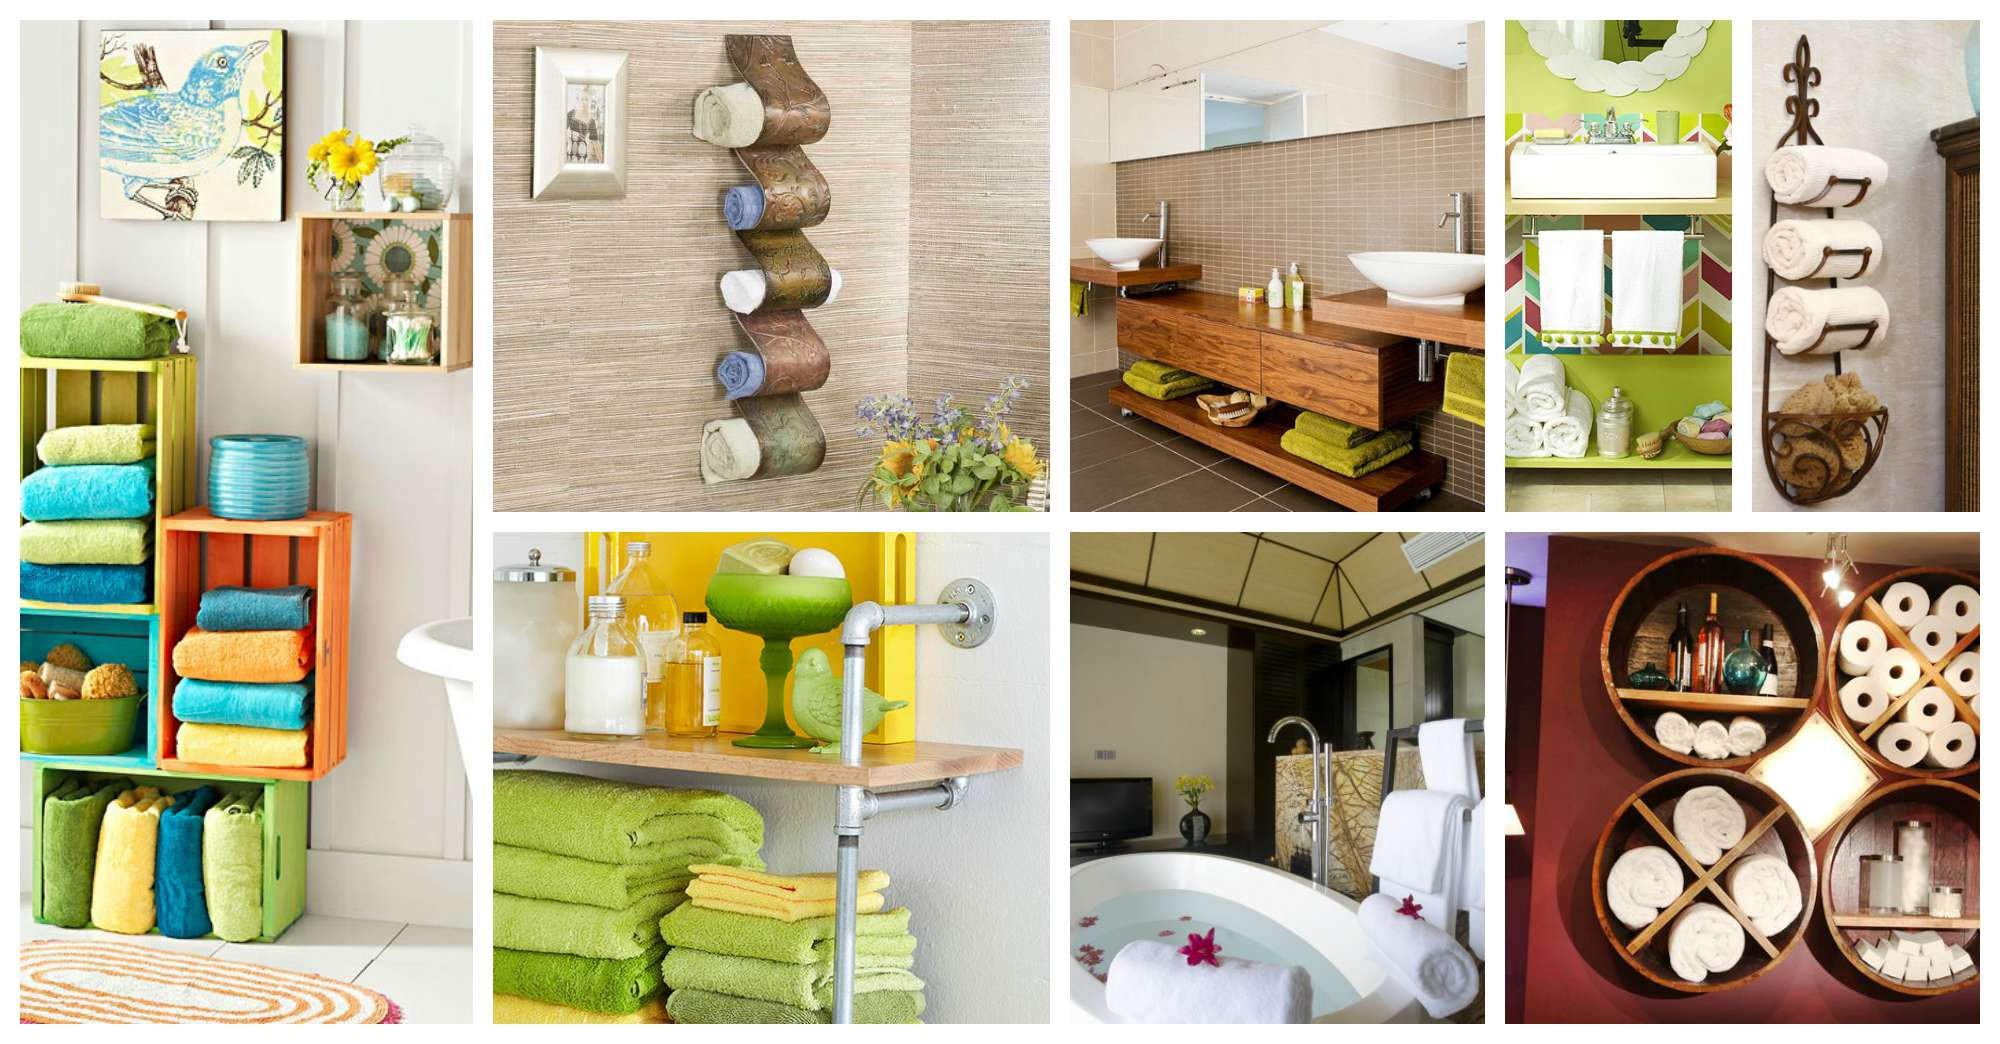 Towel Storage Ideas For Bathroom Fascinating 20 Creative Bathroom Towel Storage Ideas Inspiration Design